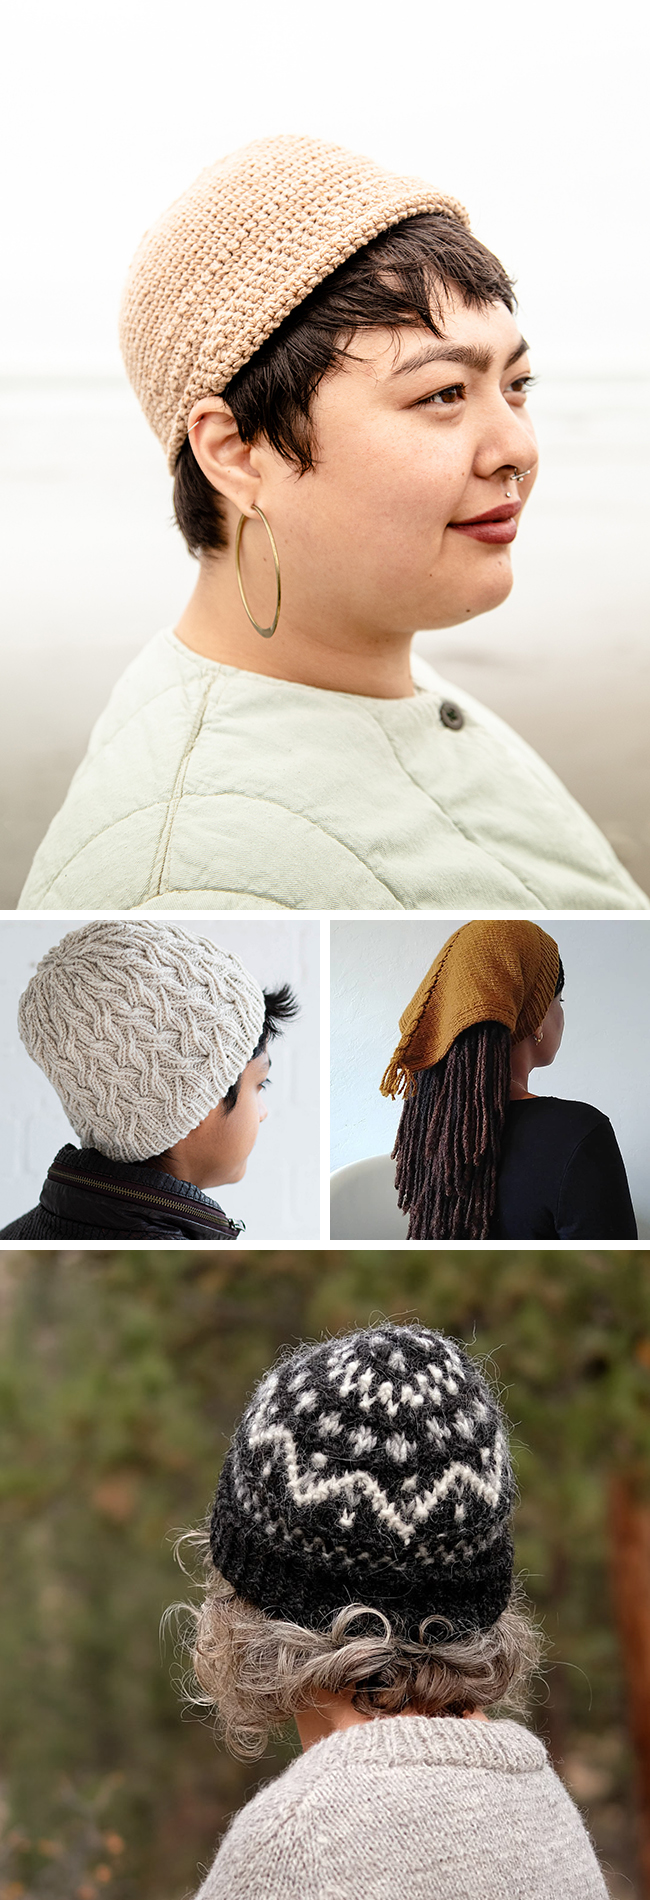 Best knitting patterns of the year (hats)